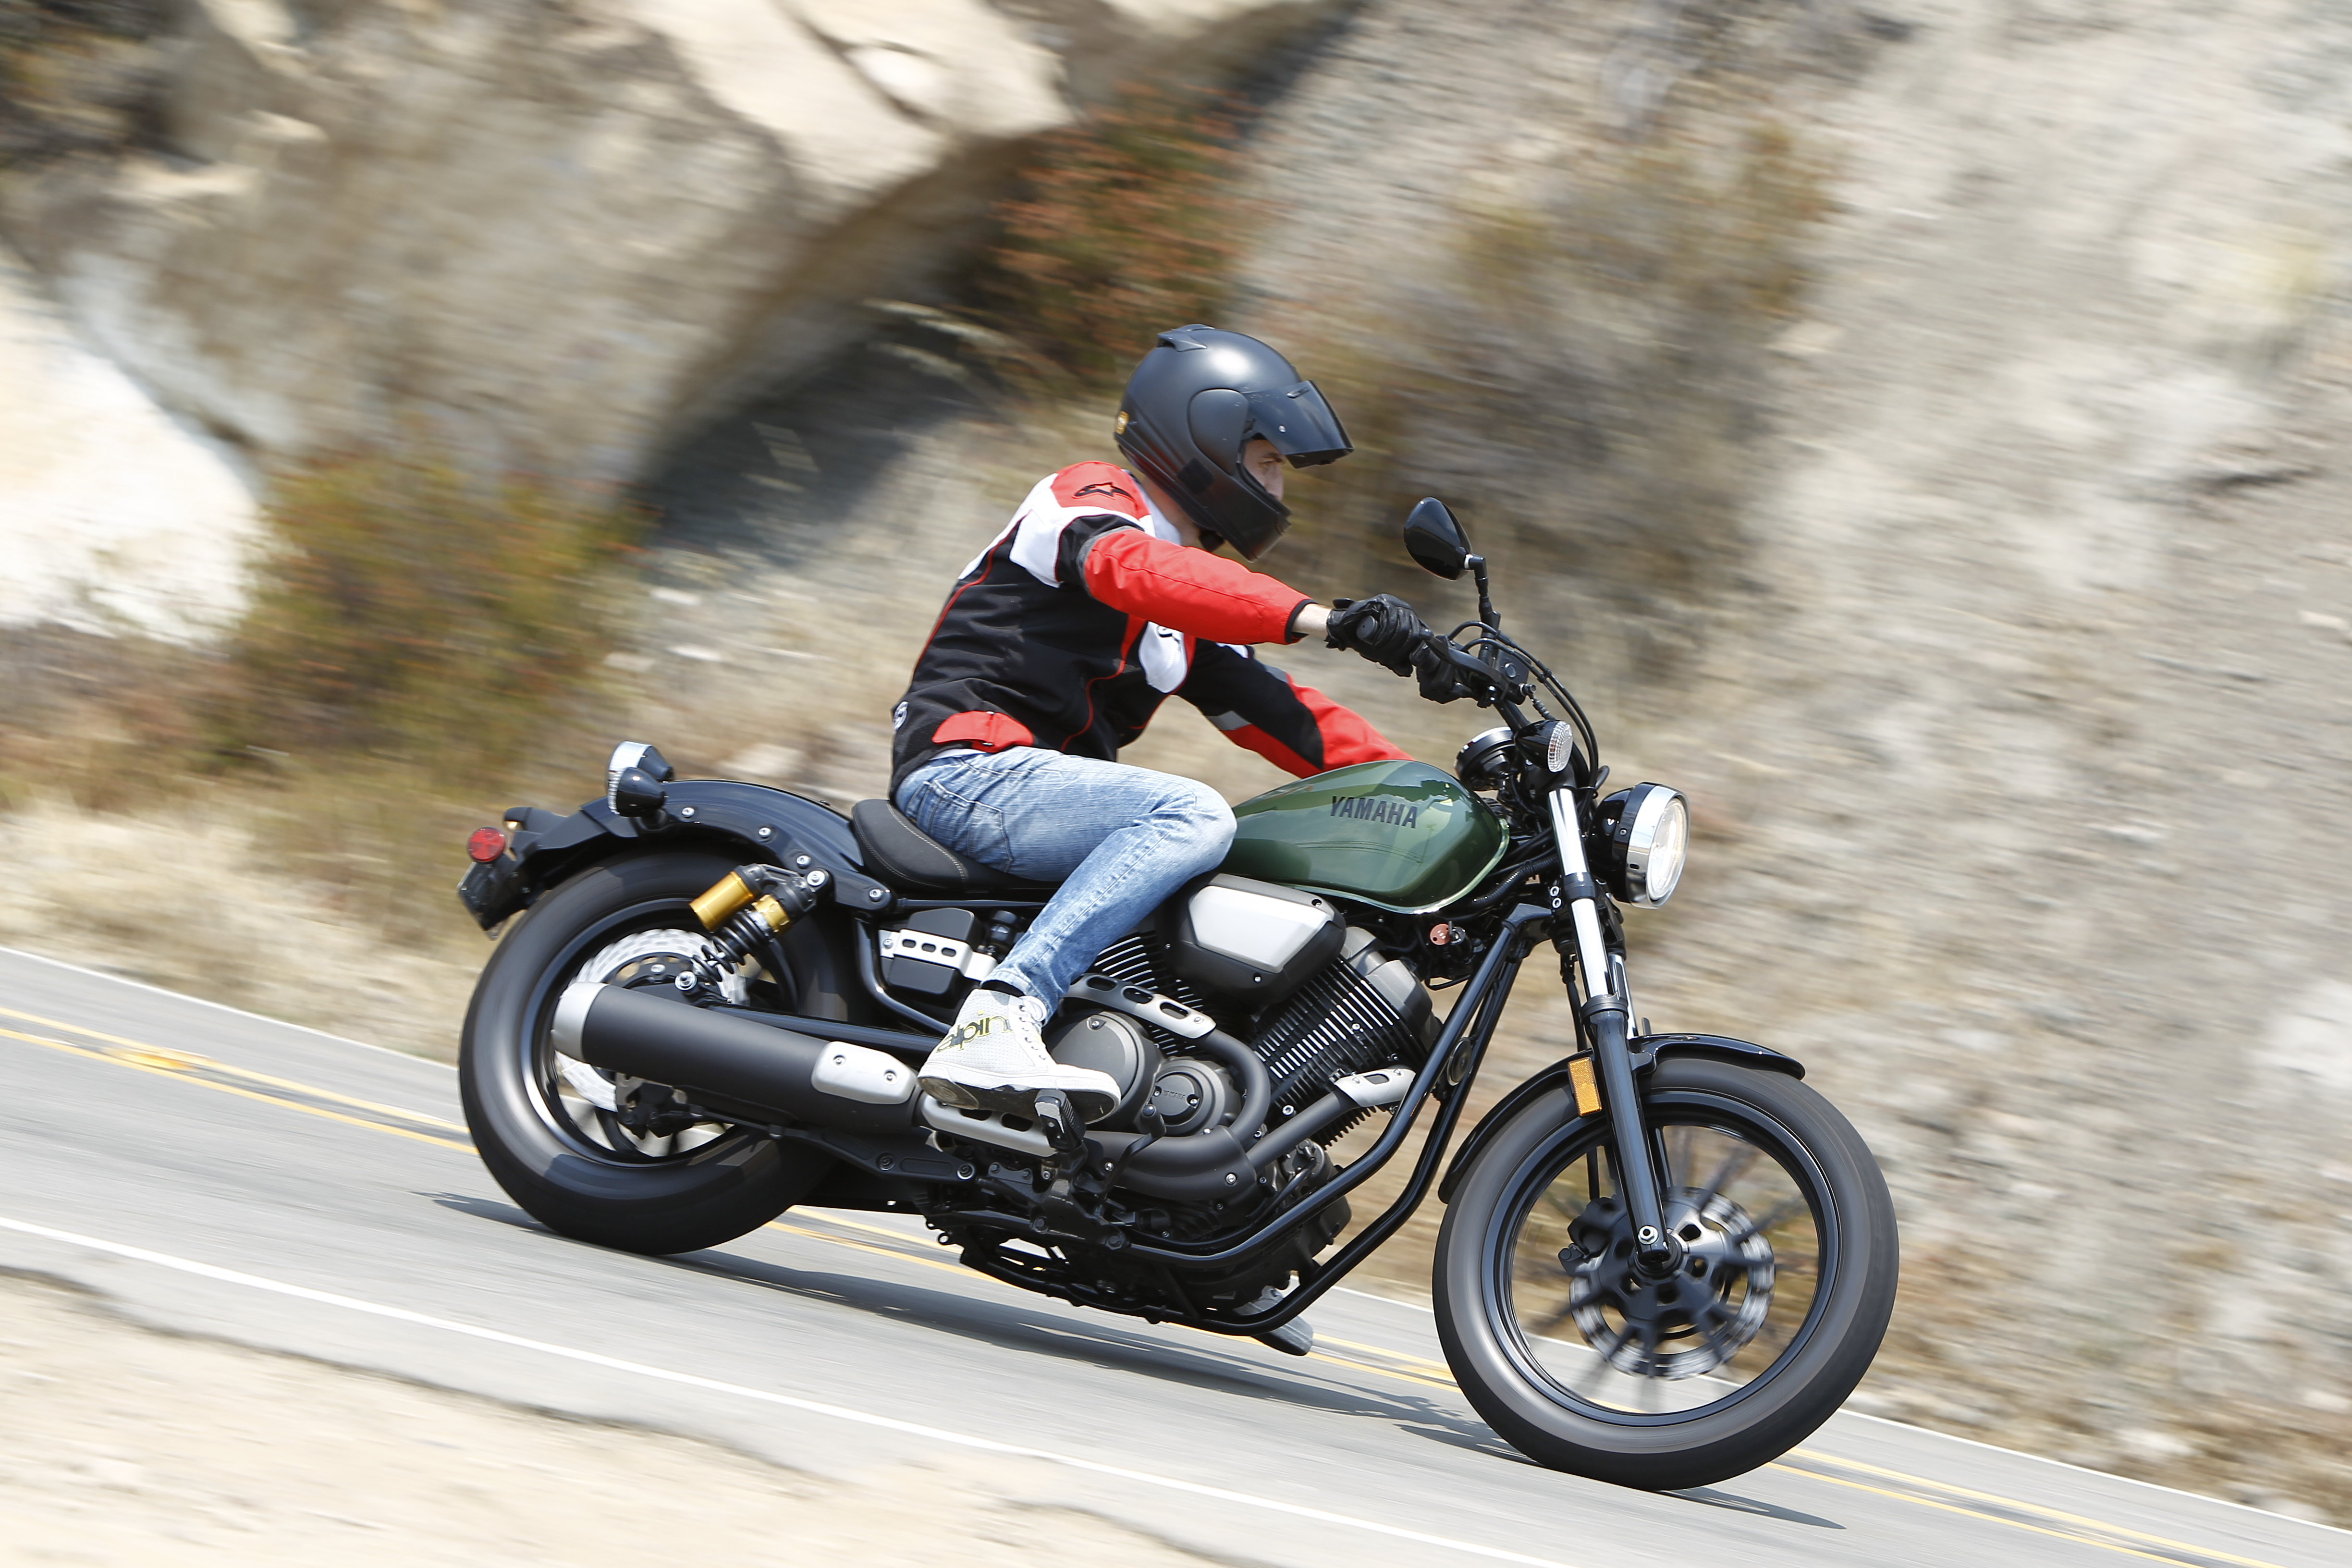 First Ride: Yamaha XV950 review